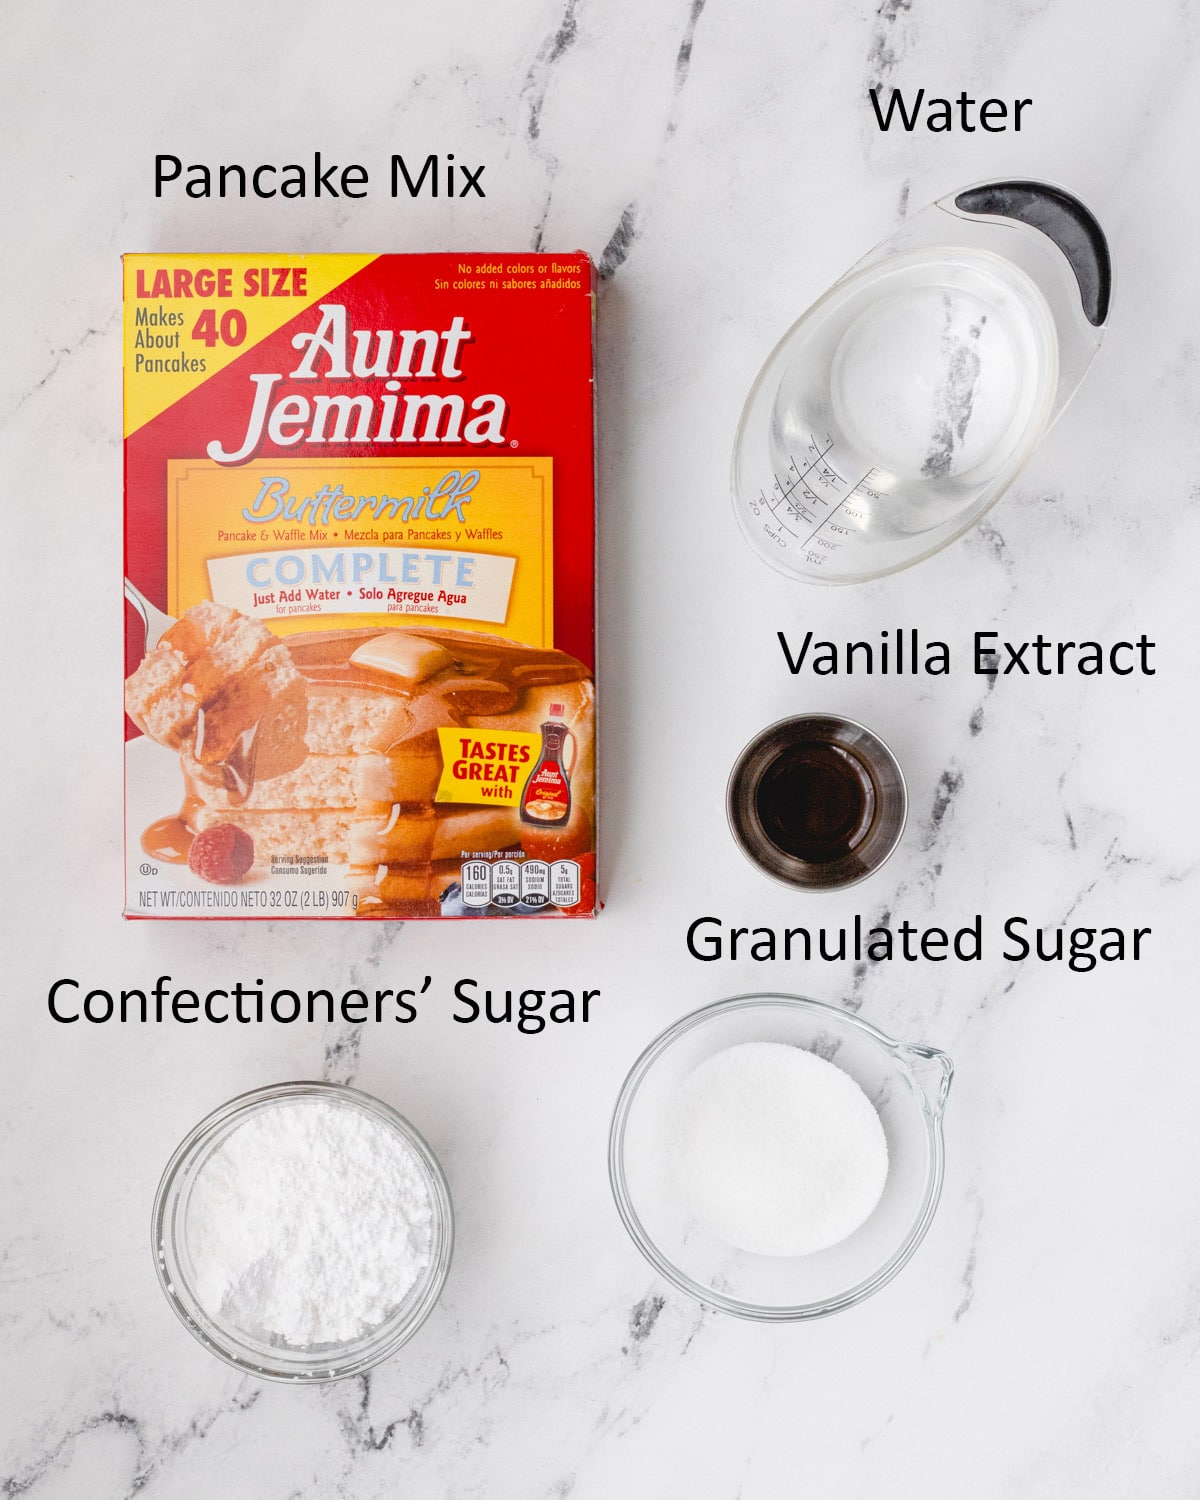 Ingredients for funnel cake bites: pancake mix, water, vanilla extract, granulated sugar, confectioners' sugar